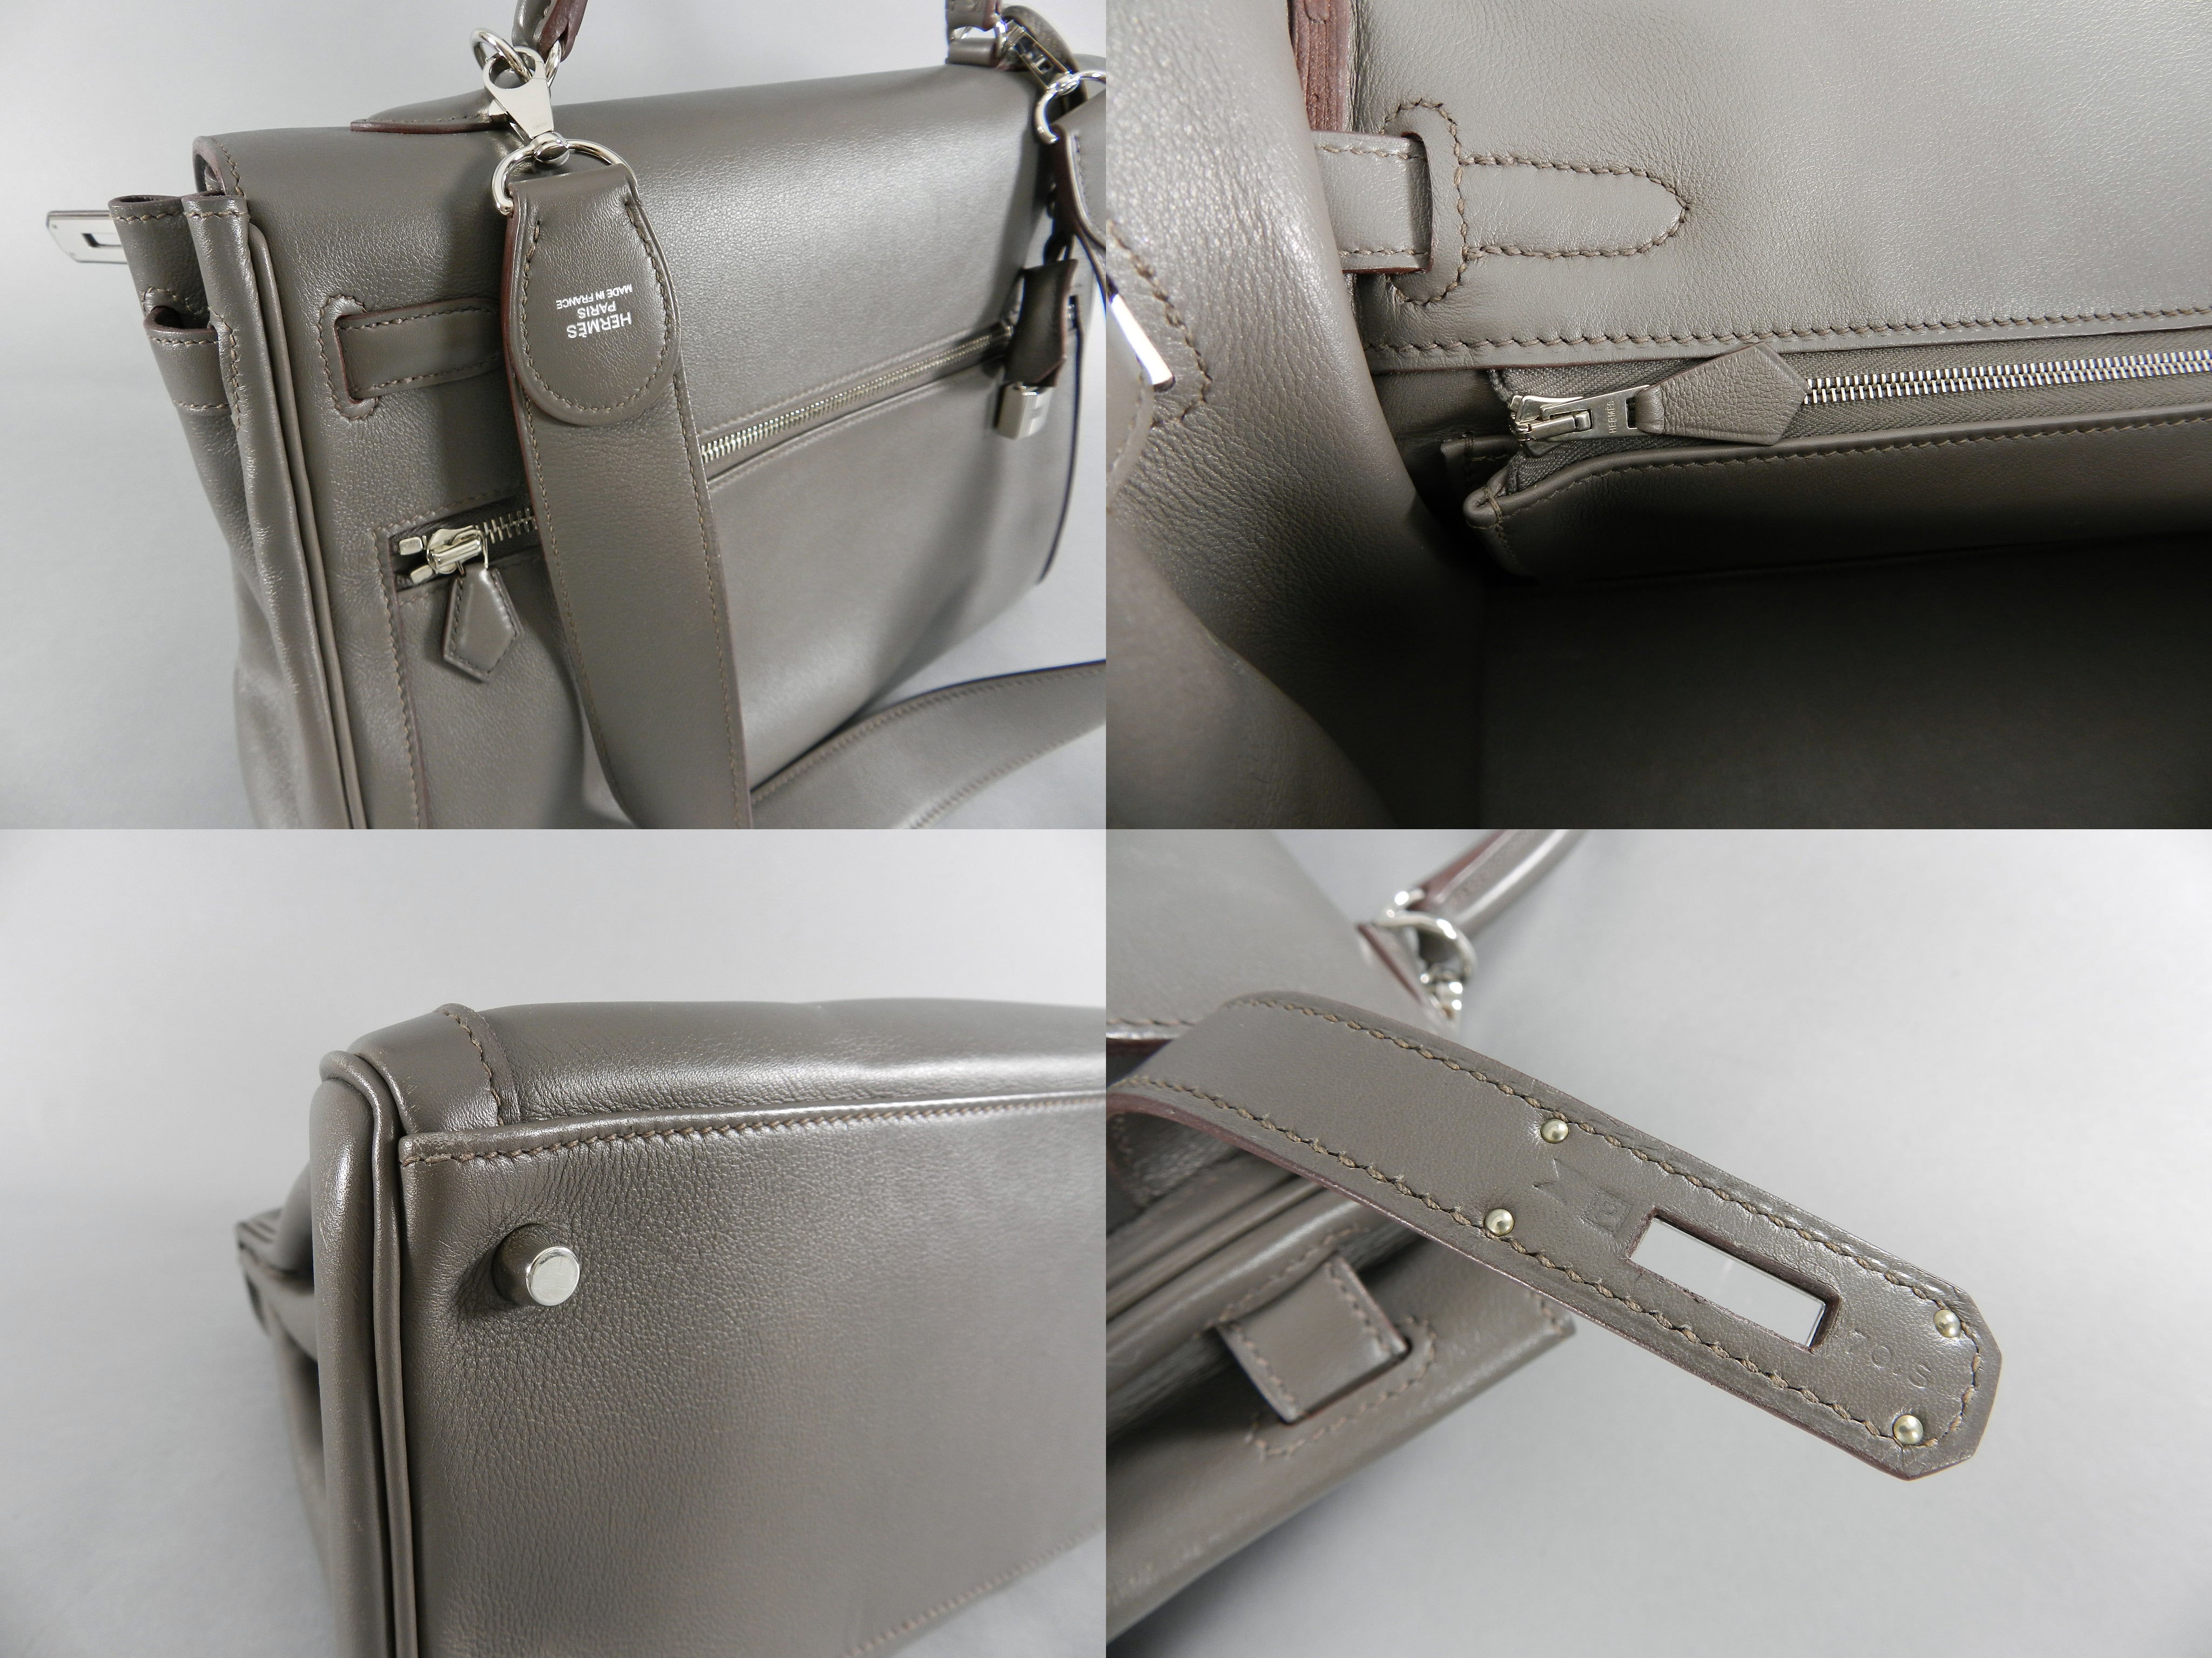 71028fc91a5f get hermes bag made in new zealand quotes 661d9 a0b4c